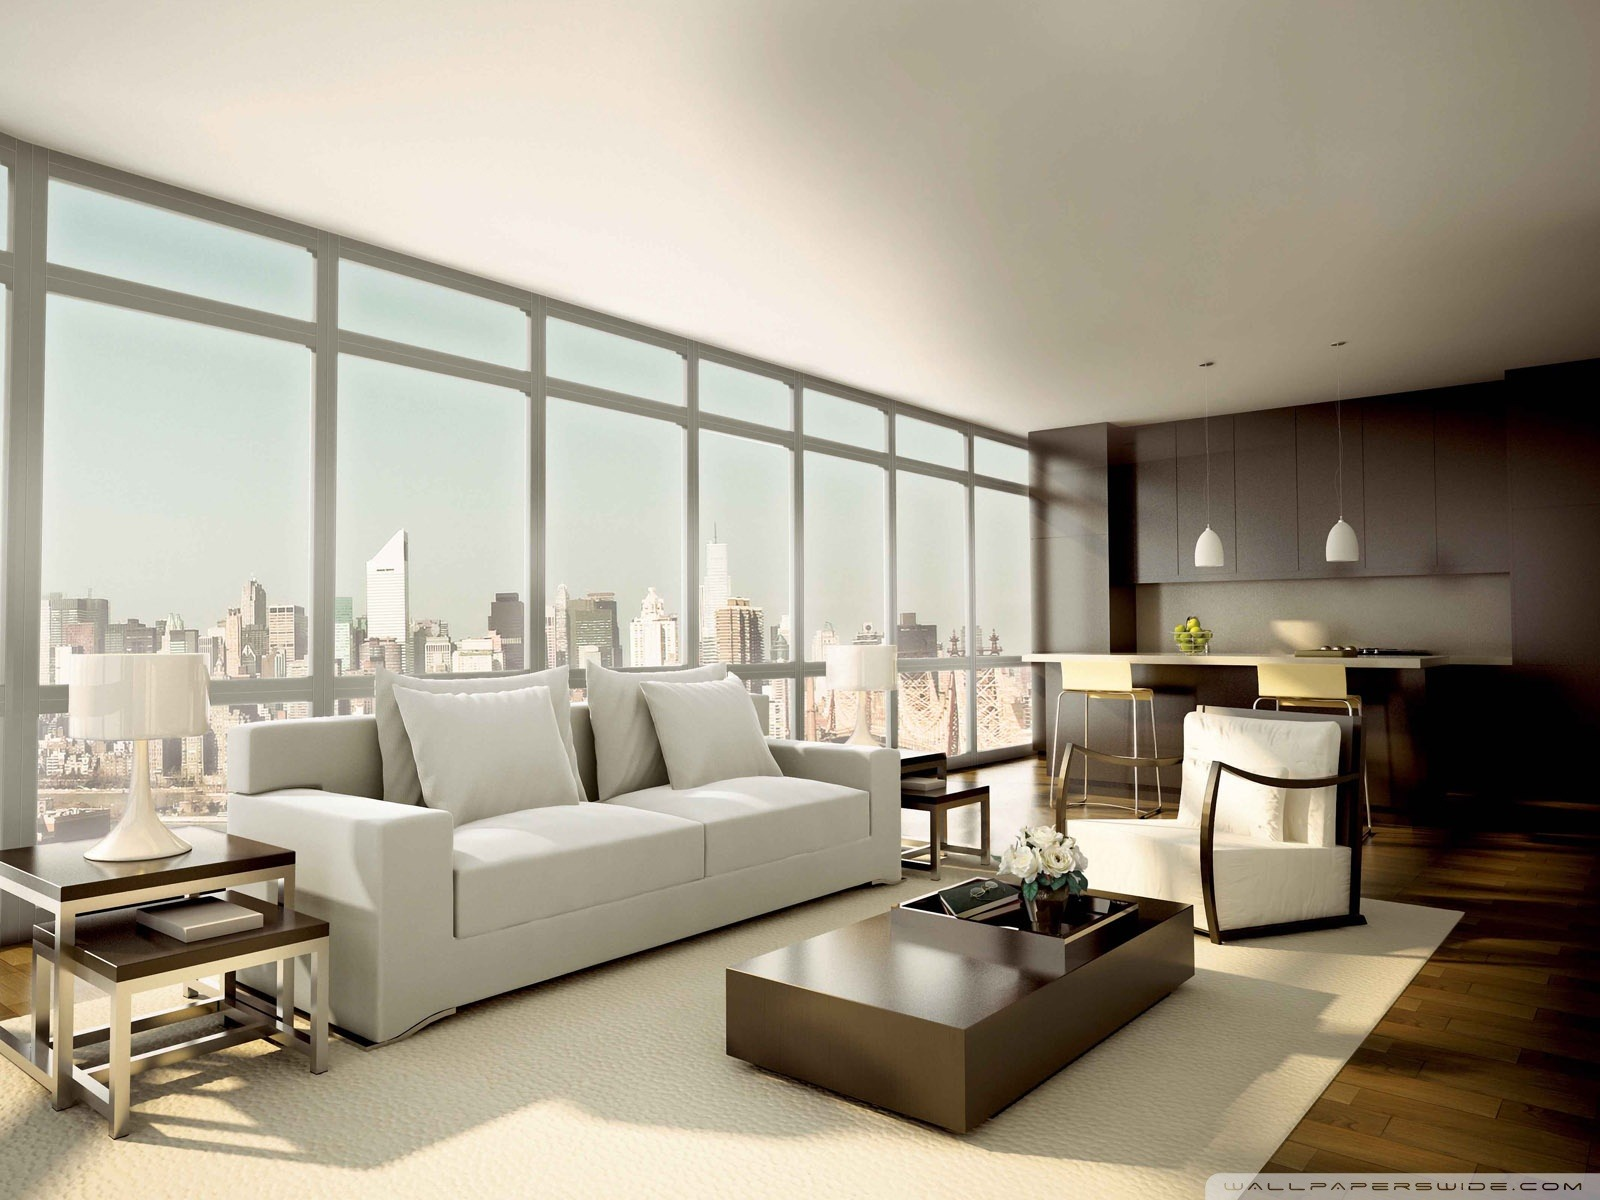 interior design-Architecture Decoration landscape wallpaper ...